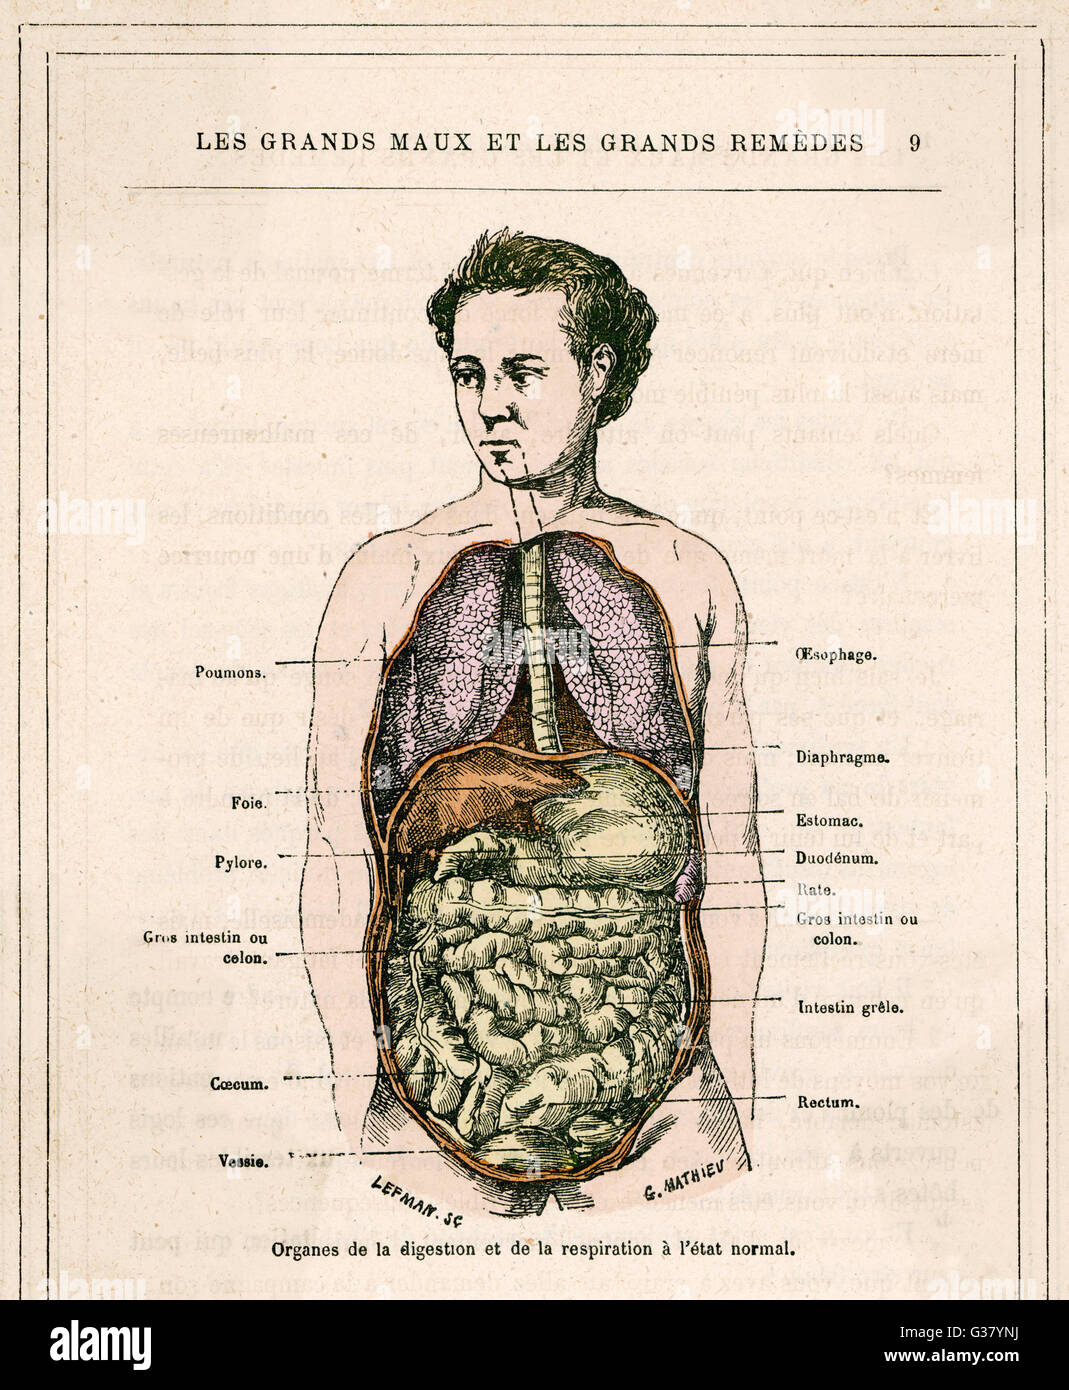 Organs of digestion and  respiration.         Date: circa 1880 - Stock Image